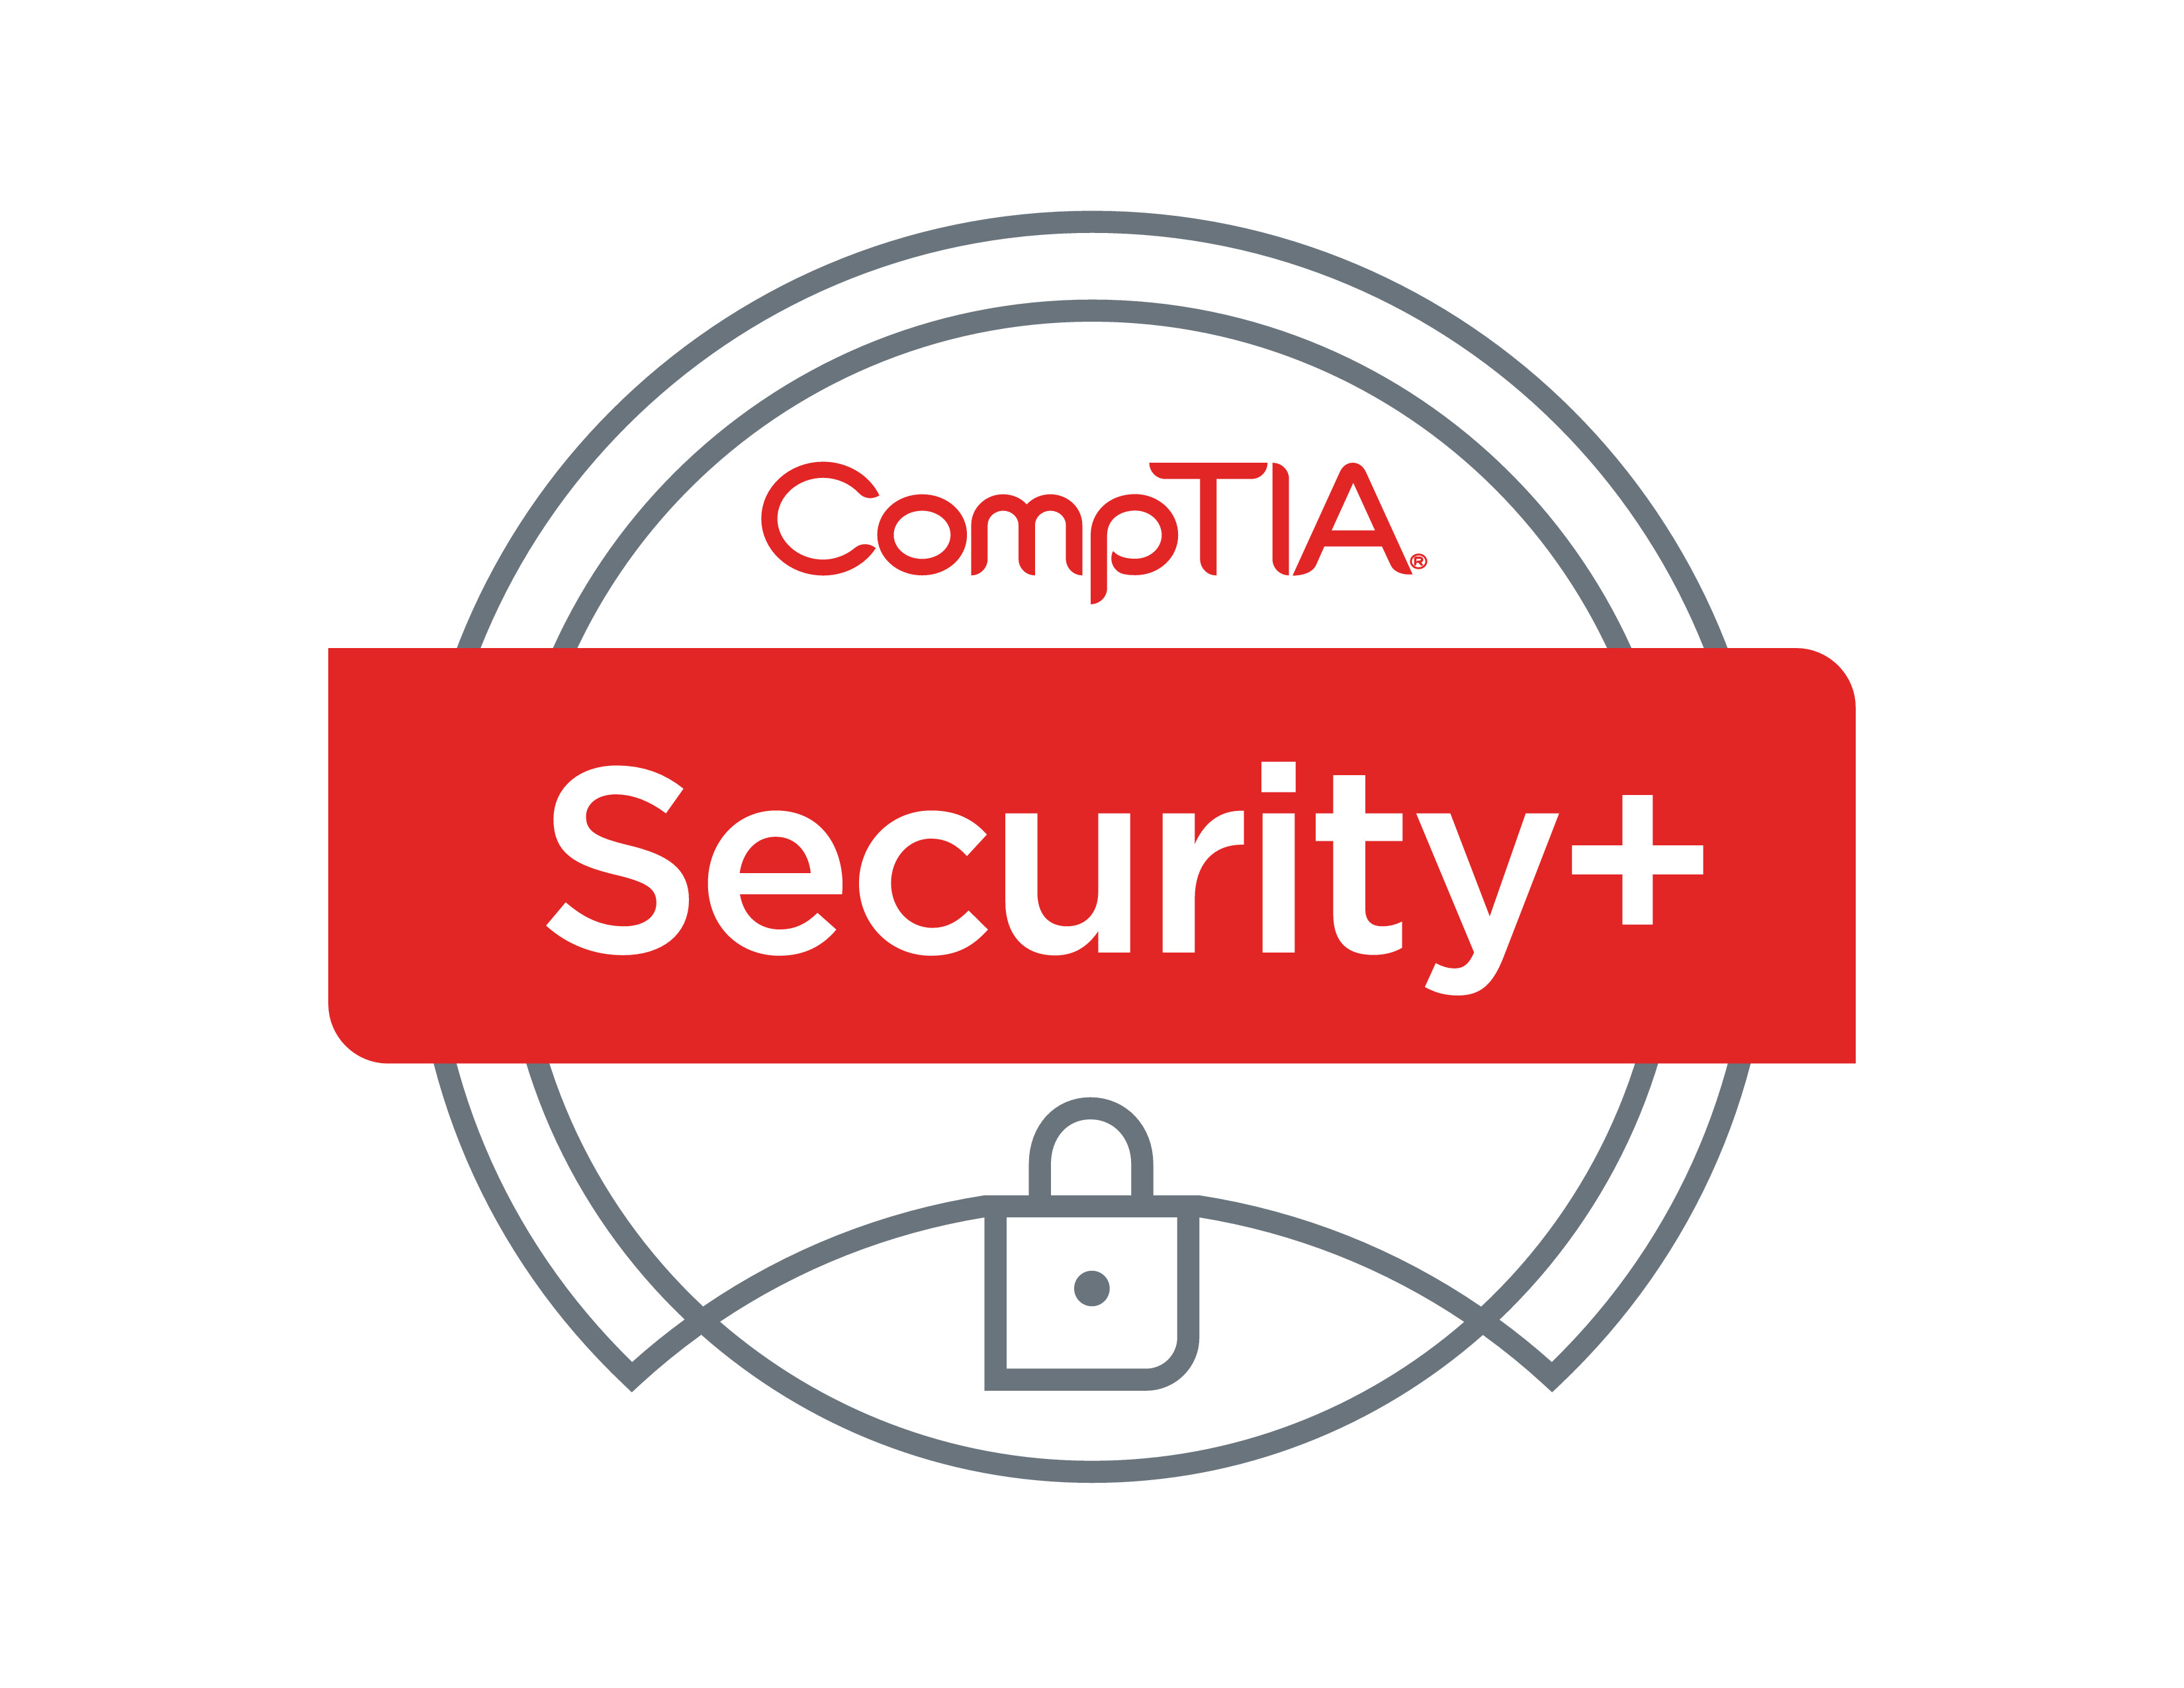 Comptia Security+ Sy0104 Exam Voucher. Top 10 Seo Companies India Car Hire Schiphol. Compare Virus Protection Software. Contact Manager Programs Digital Art Colleges. Institute Of Hair Design Shopping Santa Fe Nm. Open Source Webinar Software. Program Installer Software Auto Payday Loans. Graphic Design Freelance Rates. Itil V3 Change Management Catc Design School